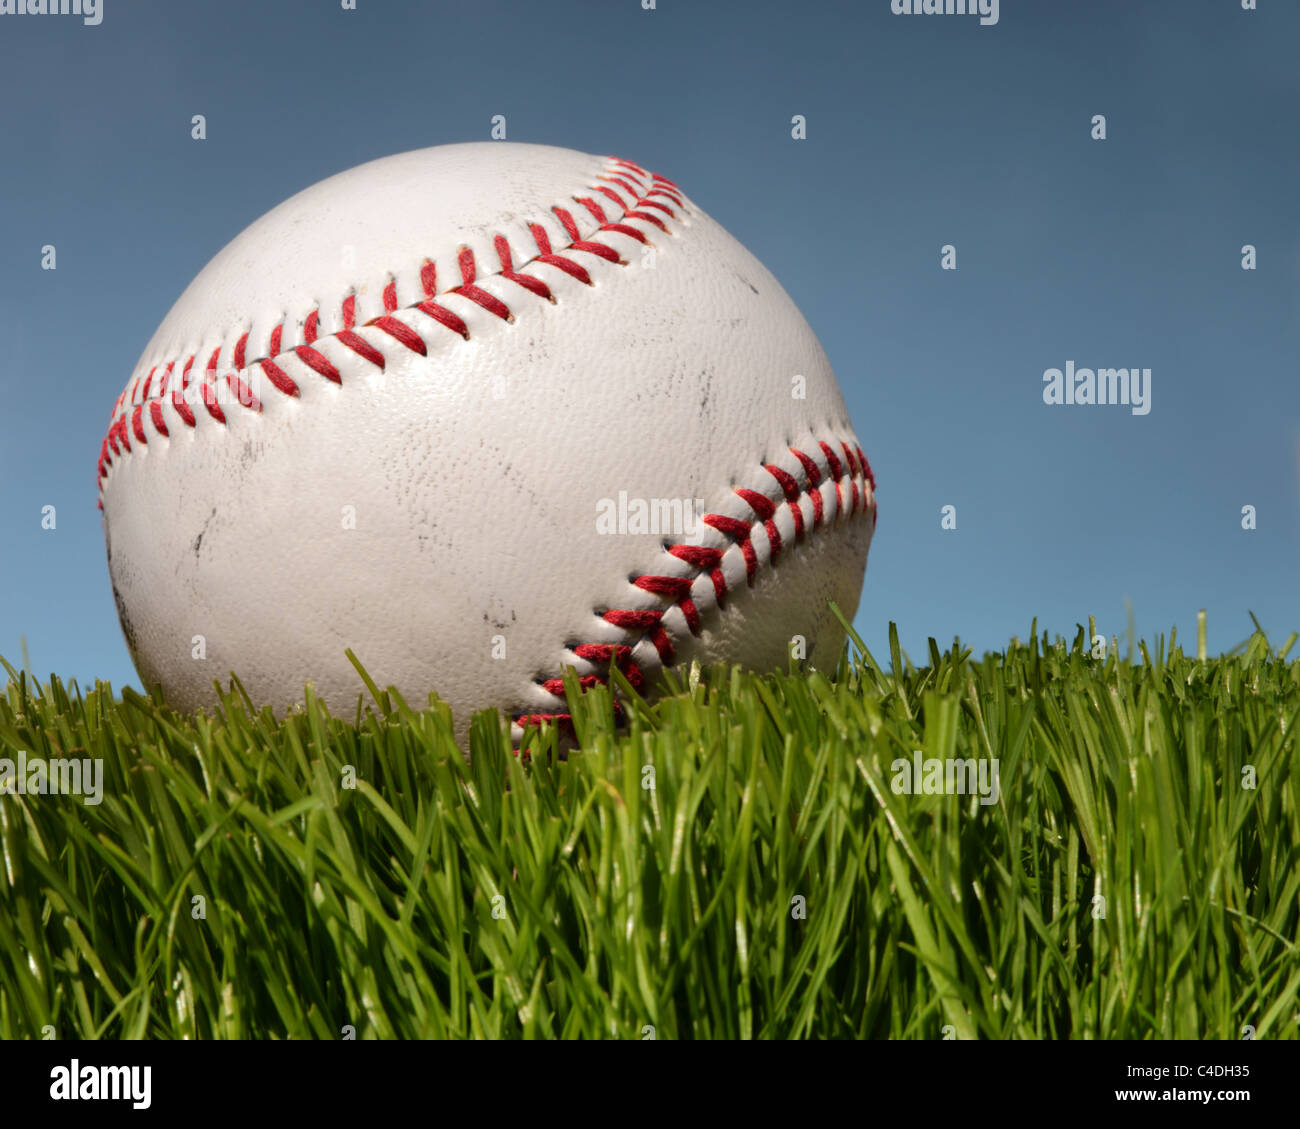 Baseball on green grass with blue sky behind. - Stock Image